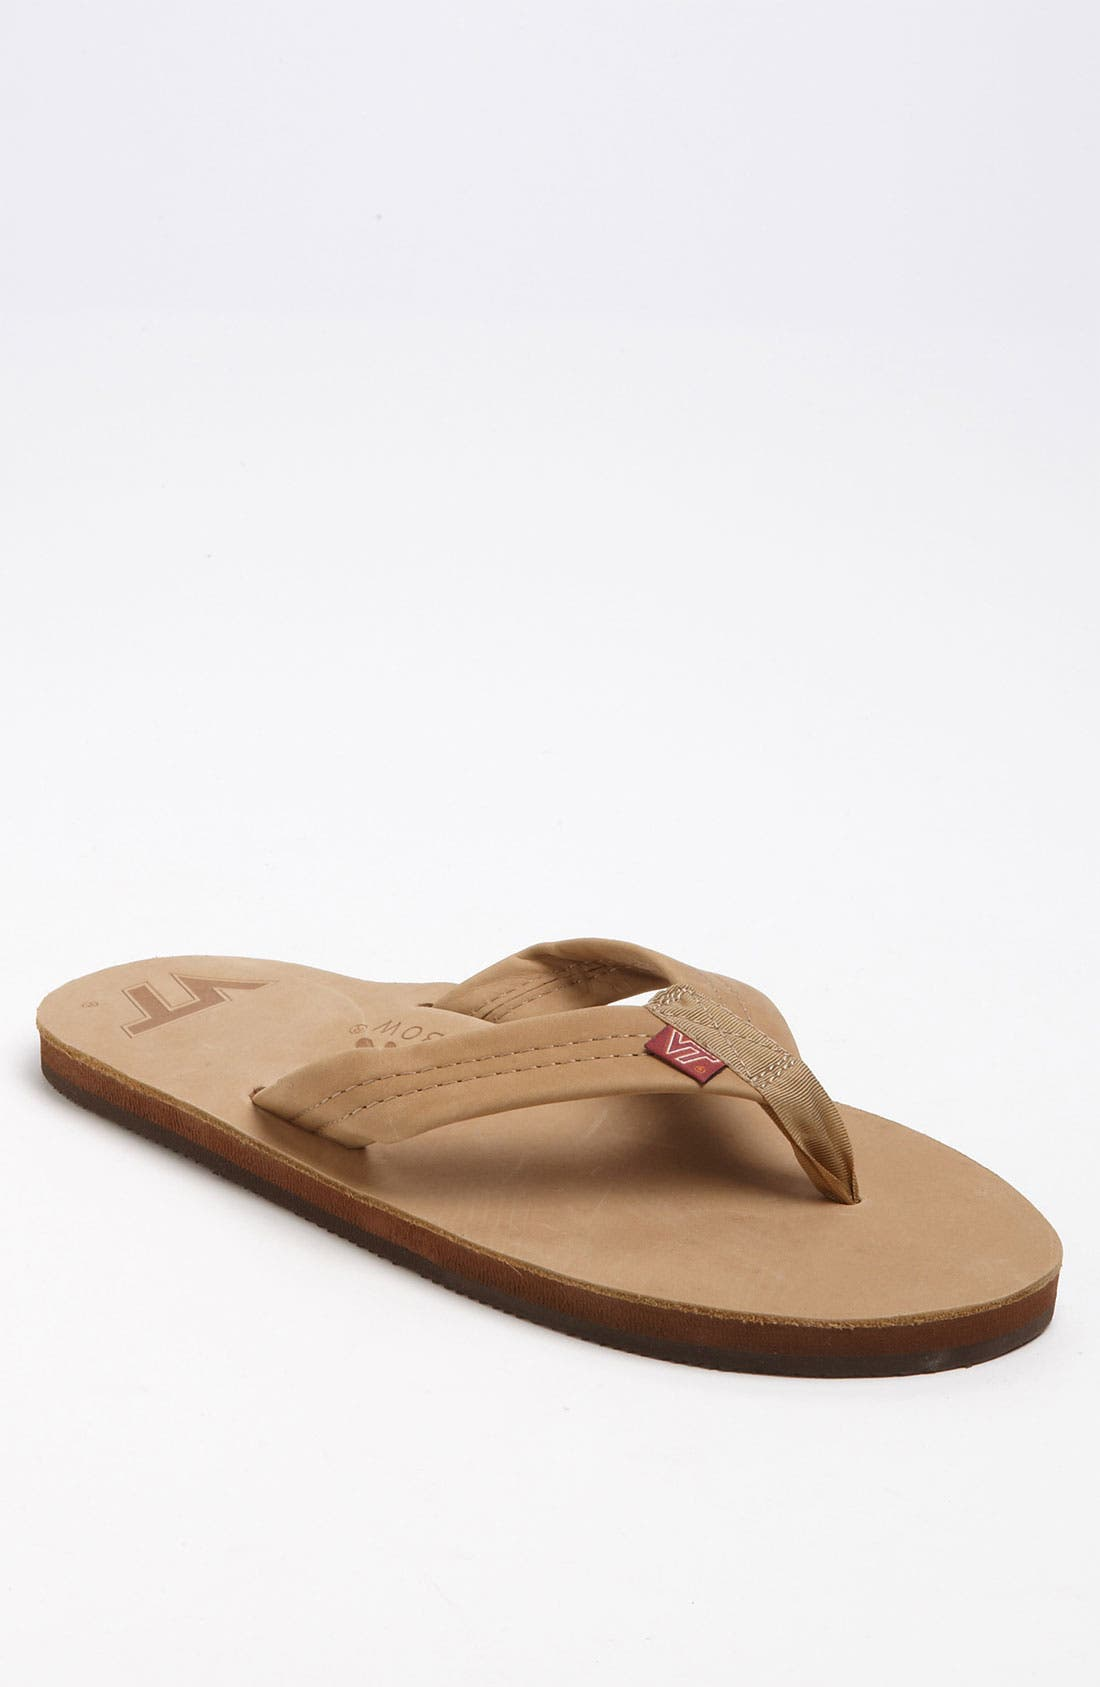 Alternate Image 1 Selected - Rainbow 'Collegiate' Leather Flip Flop (Men)